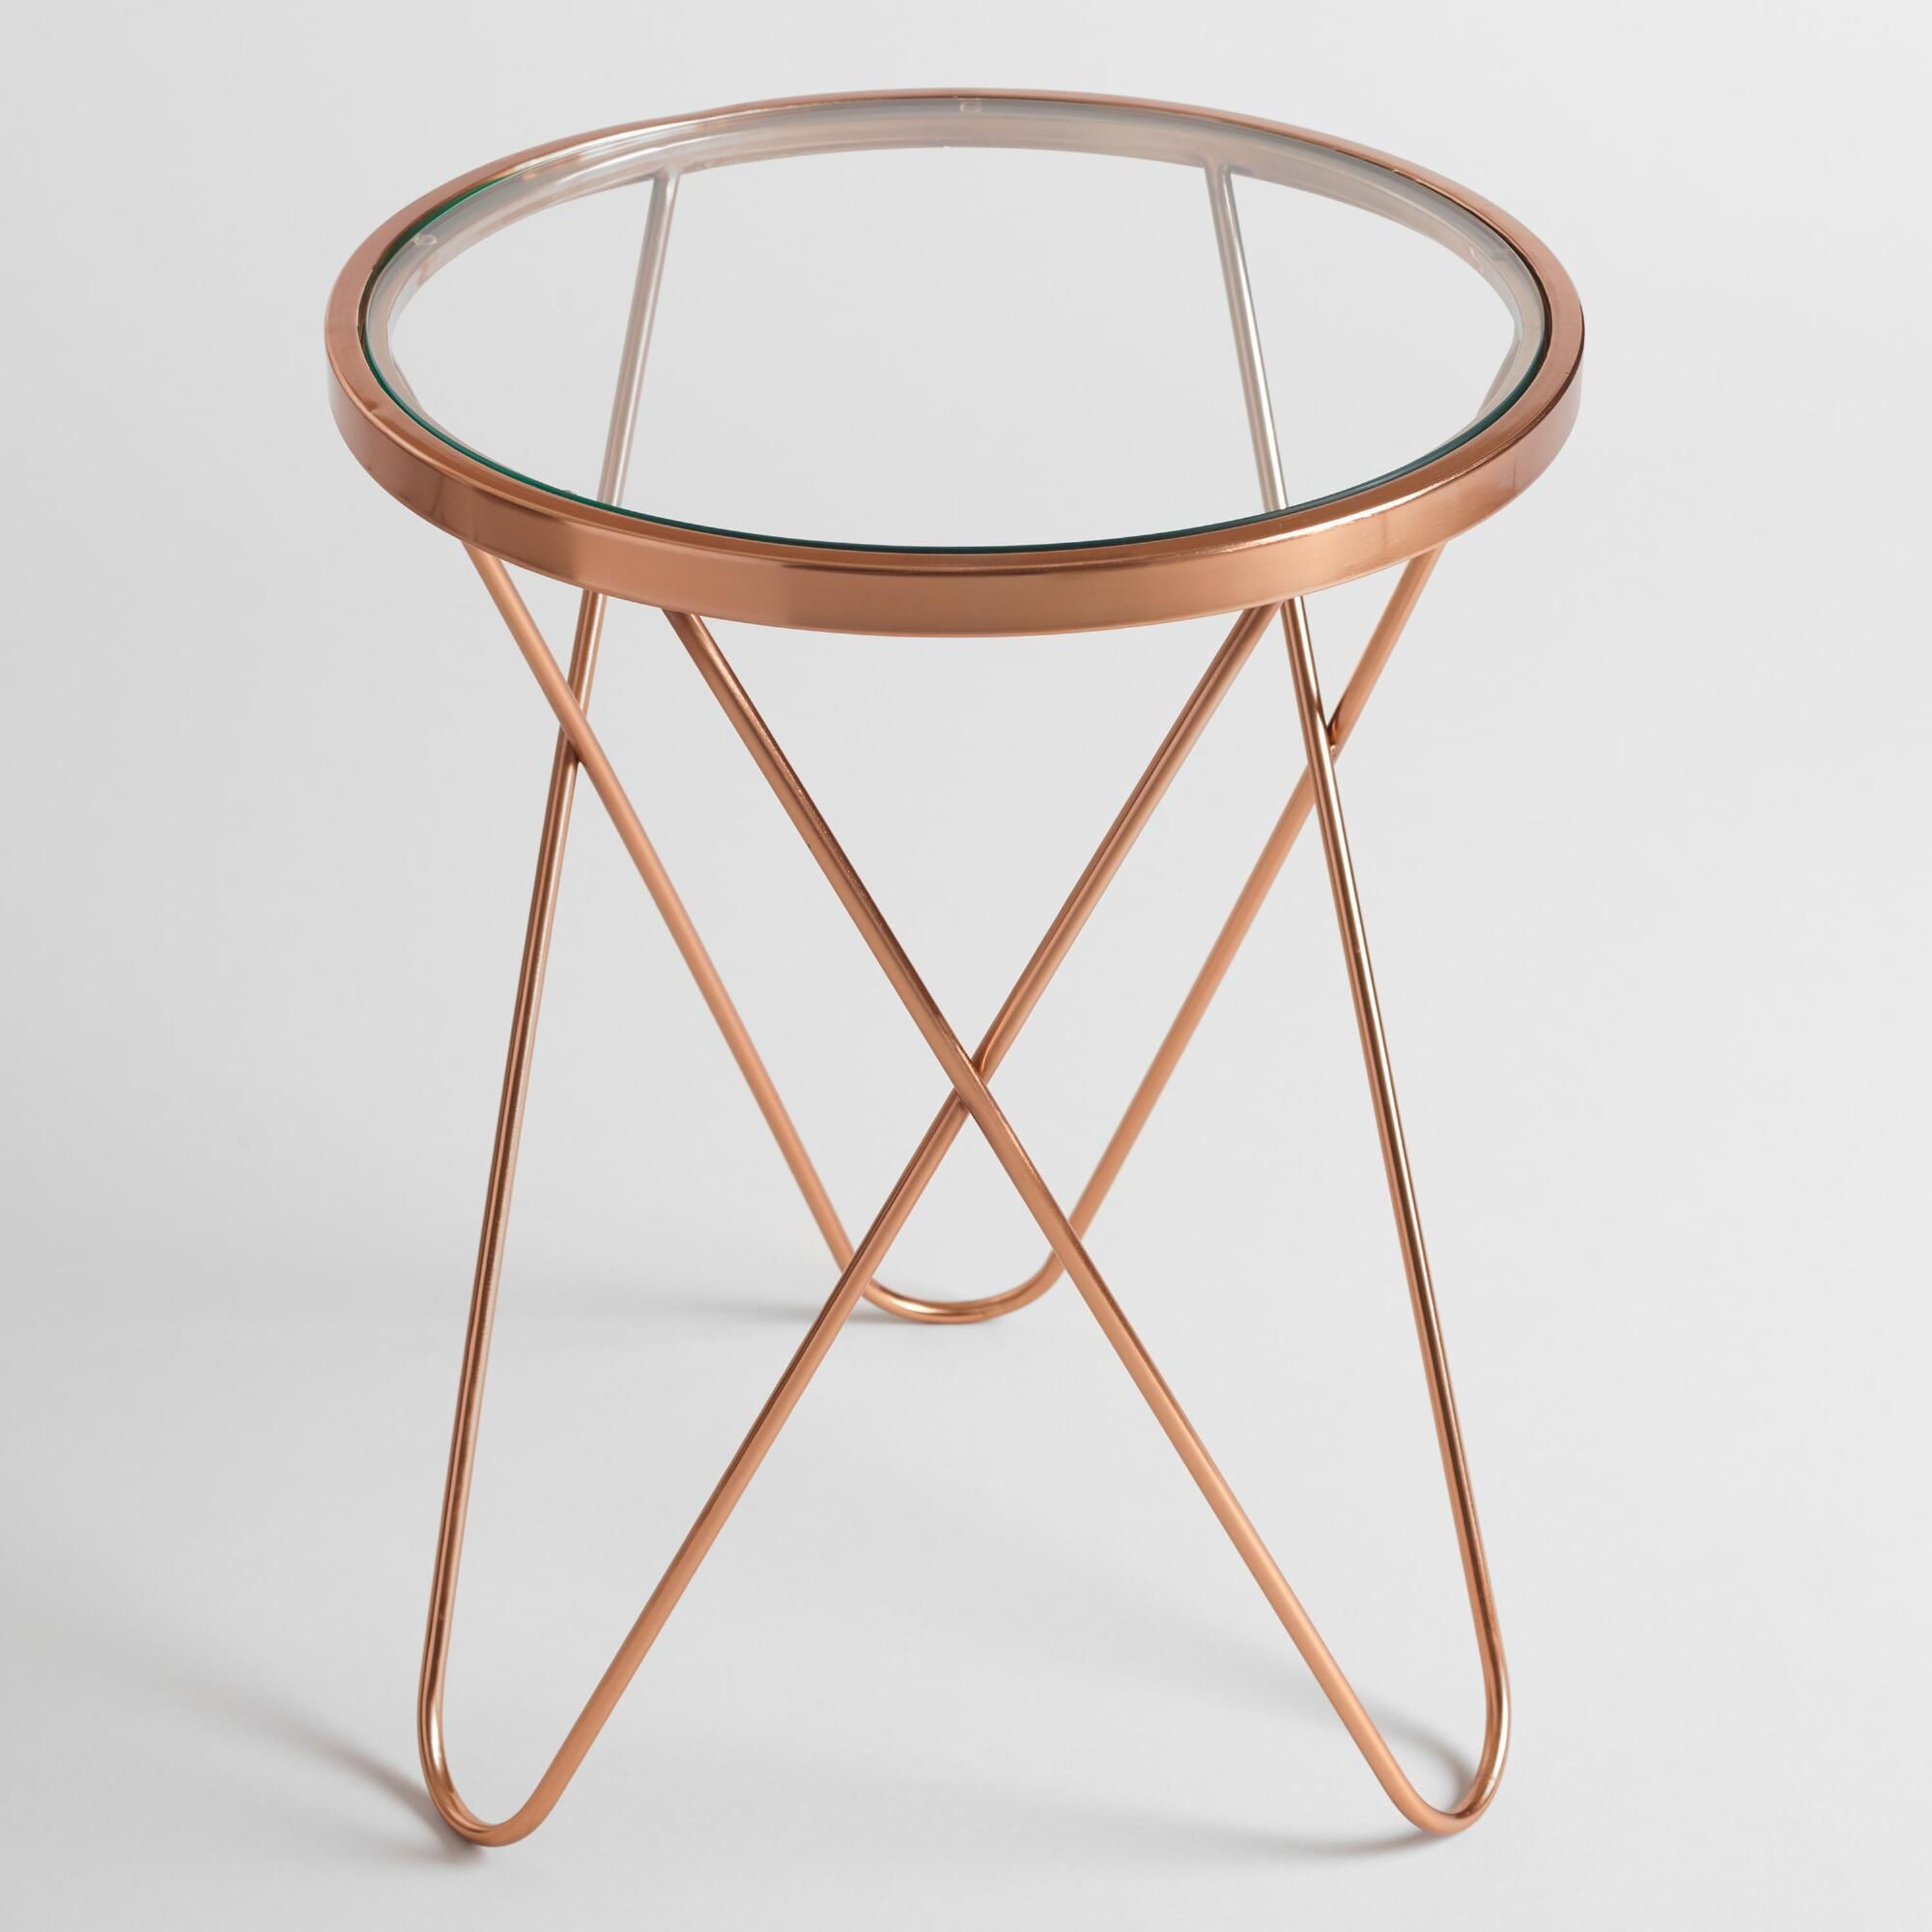 Glass Coffee Table With Gold Legs With A Round Glass Top And A Rose Gold Metal Frame Our